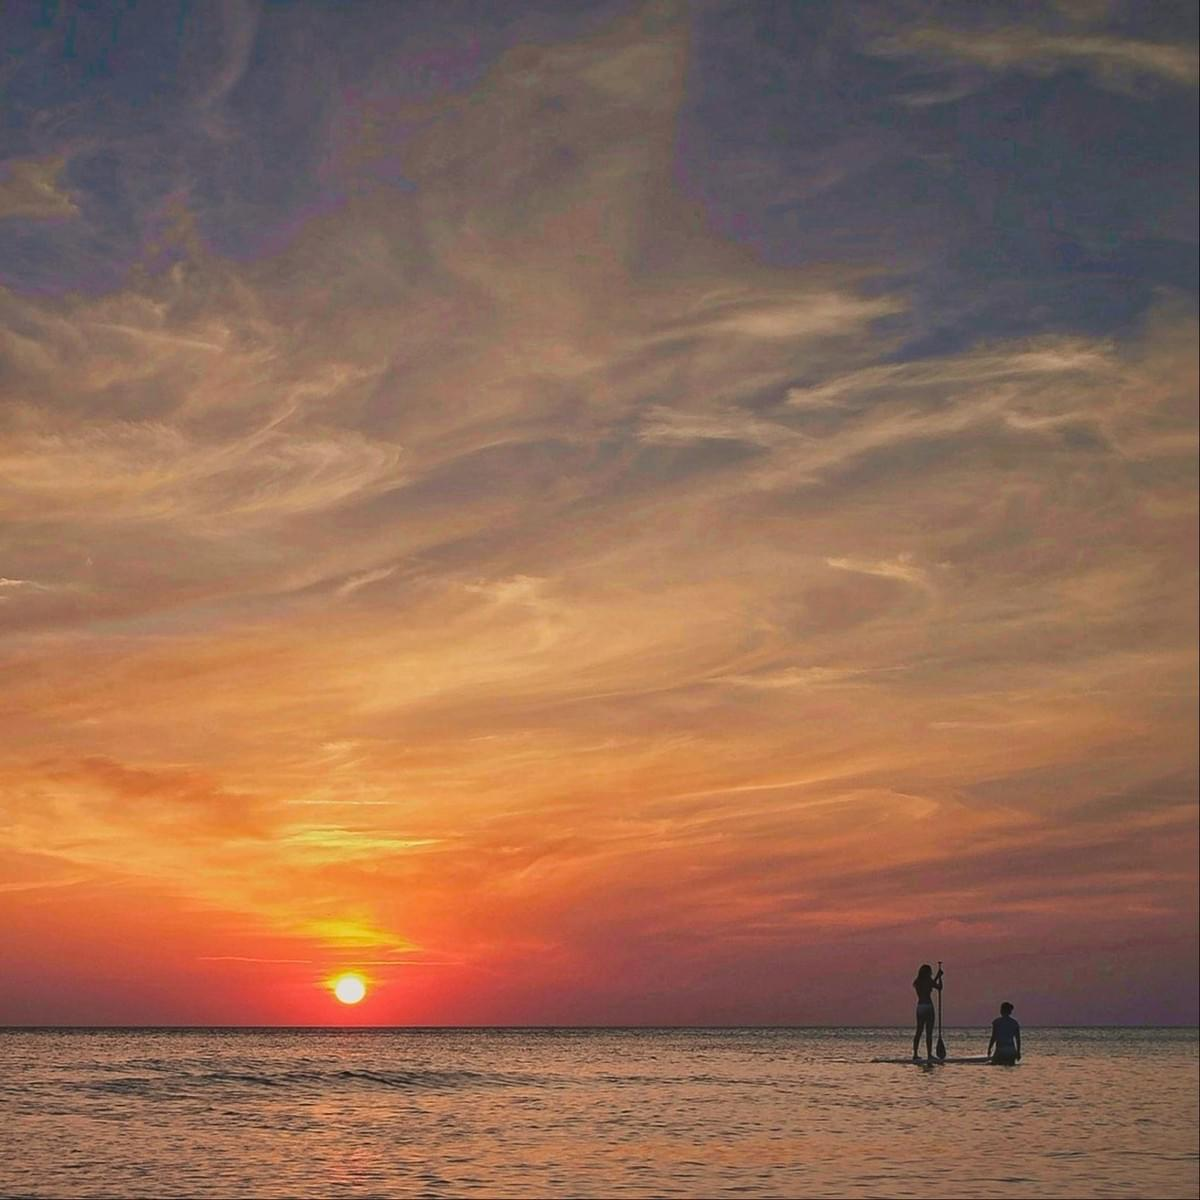 Enjoy a unobstructed sunset on a paddle board!